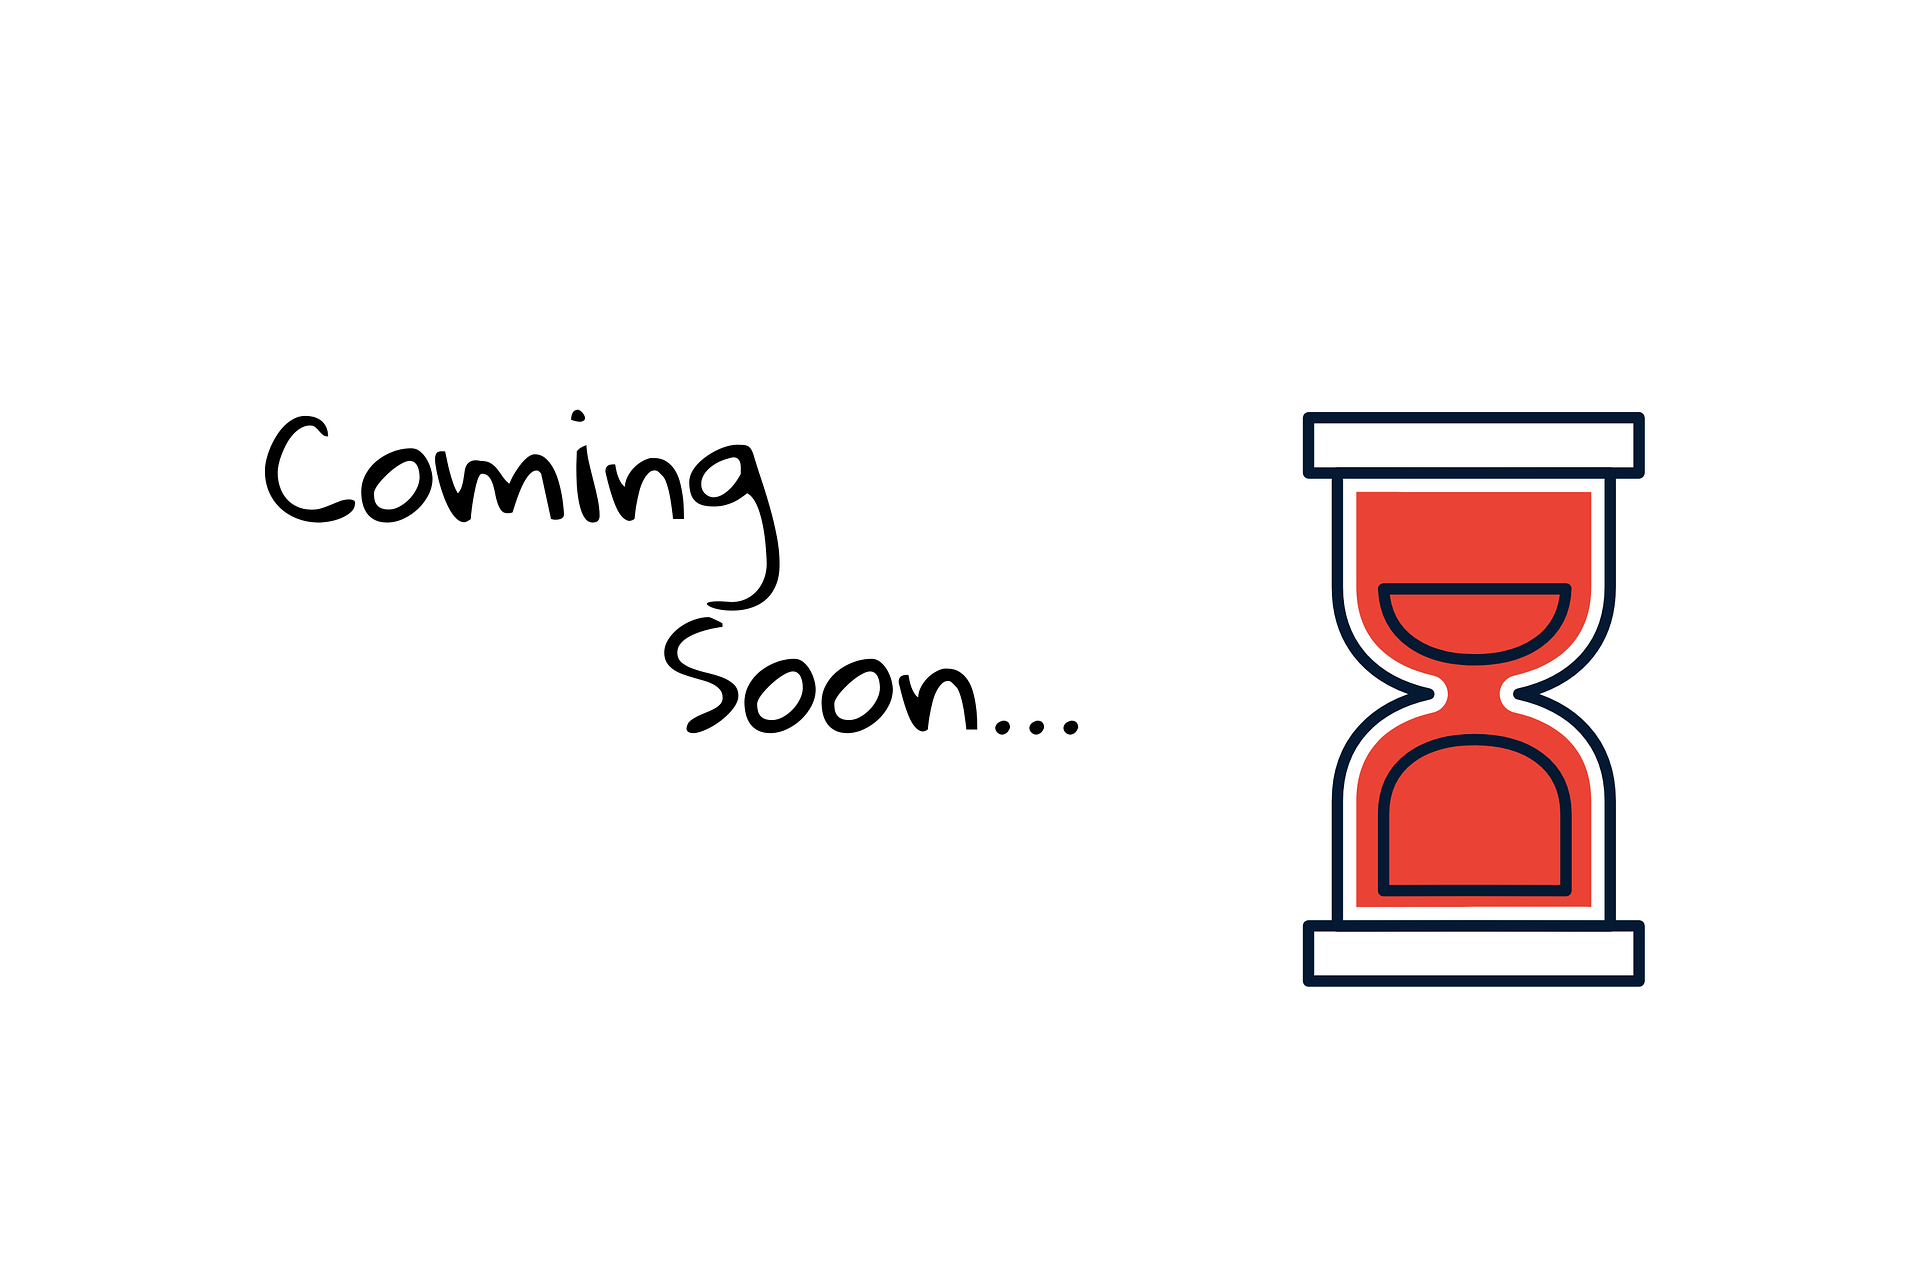 coming-soon-hour-glass-4721933_1920